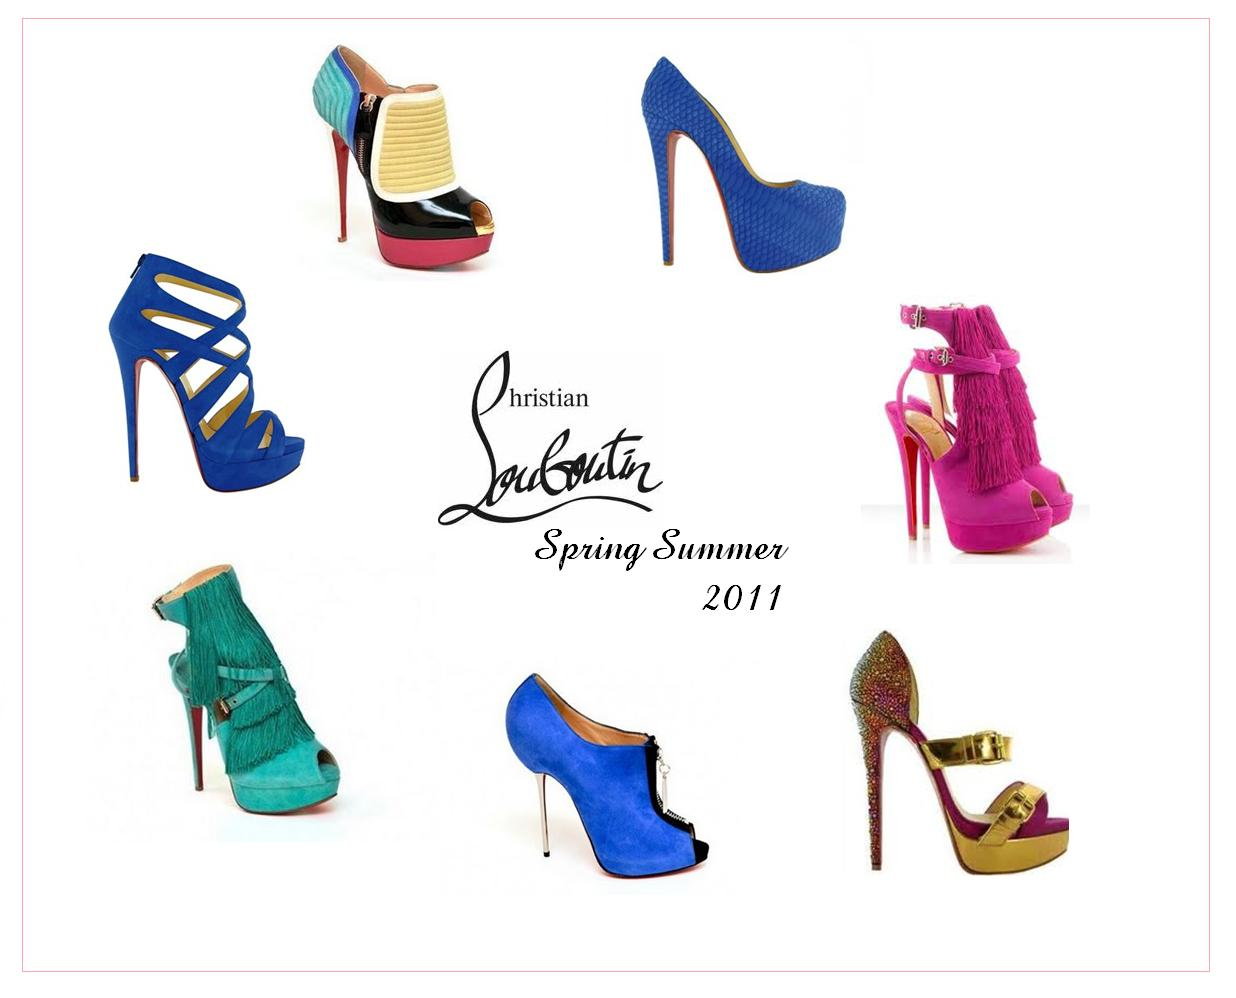 SNEAK LOOK AT CHRISTIAN LOUBOUTIN SPRING SUMMER 2011 COLLECTION